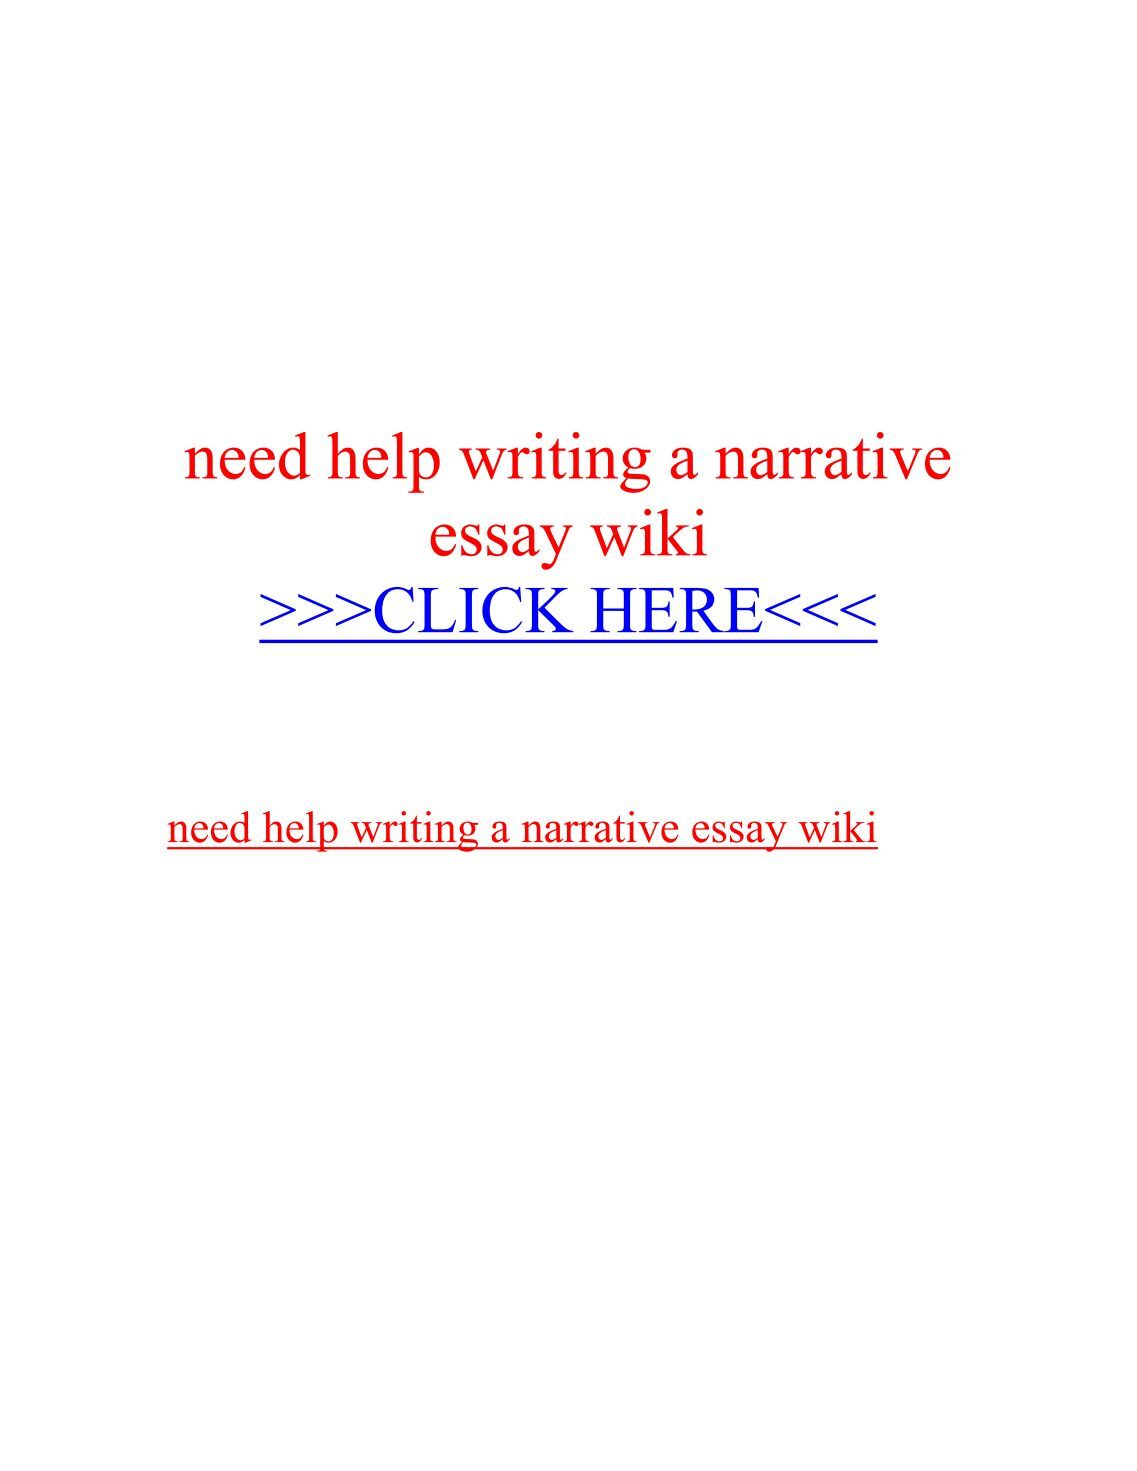 help with writing a narrative essay Narrative essays are a popular type of academic writing both high school and college students write loads of them these essays show your creativity, character, and ability to tell a compelling story telling a great story could be a challenging task that's why essaypro's qualified team have compiled a list of things you need.